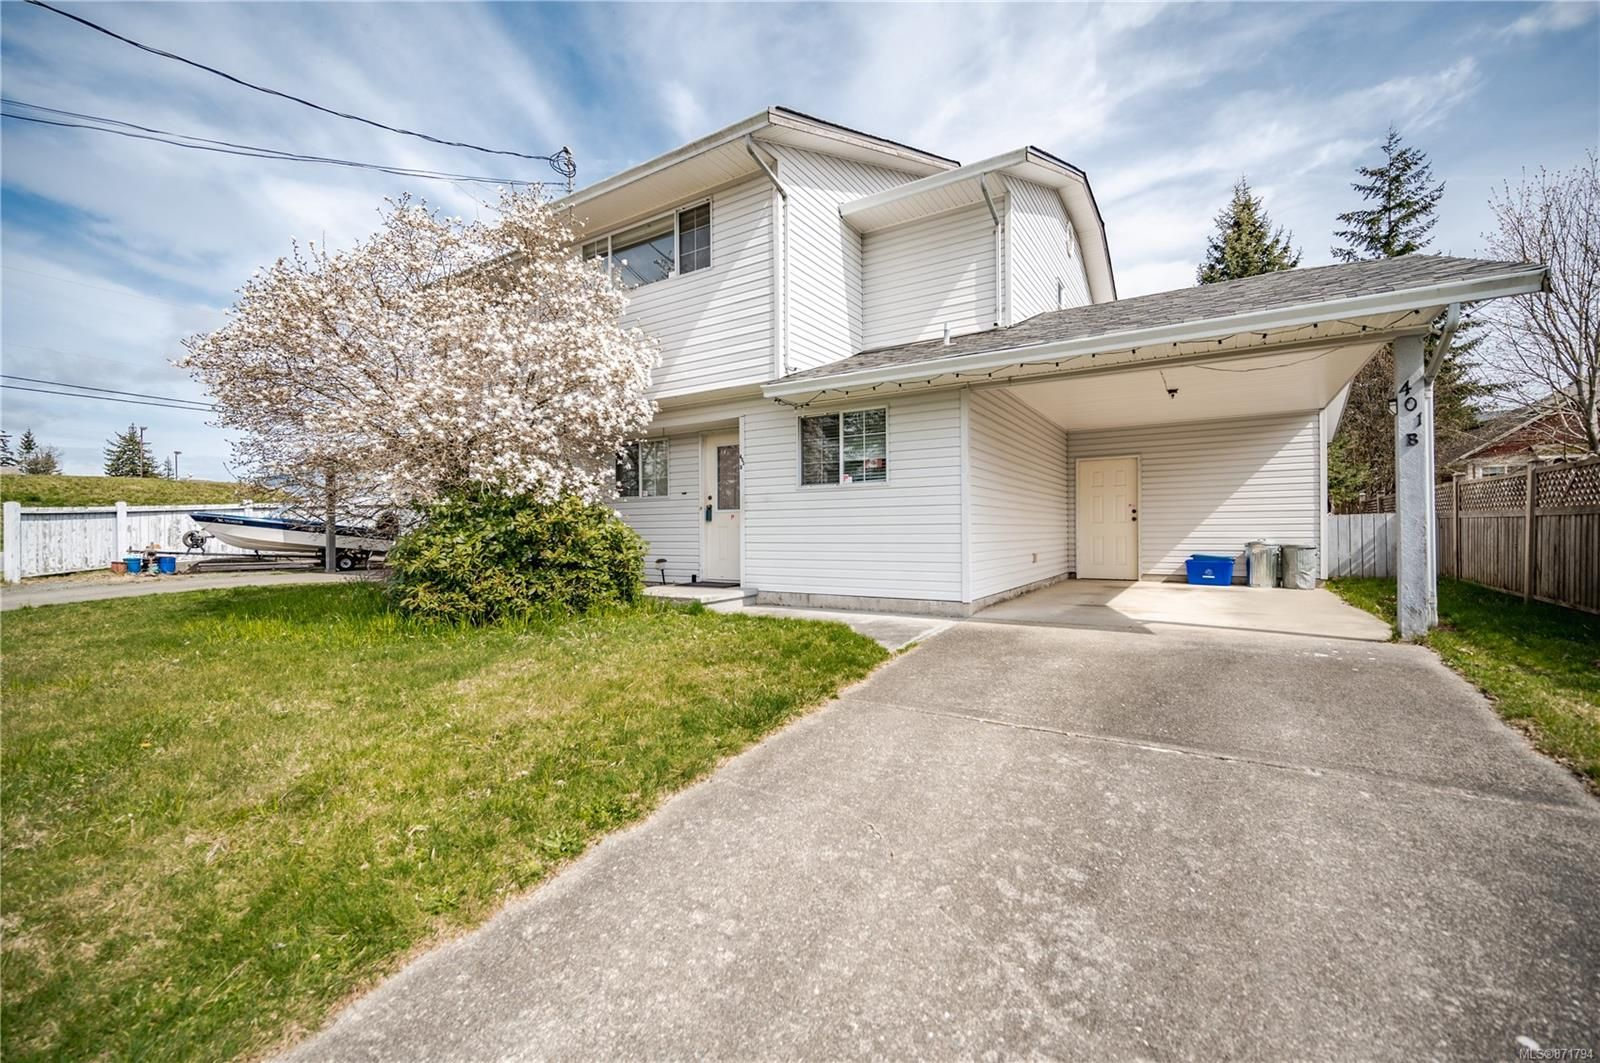 Main Photo: B-401 Quadra Ave in : CR Campbell River Central Half Duplex for sale (Campbell River)  : MLS®# 871794